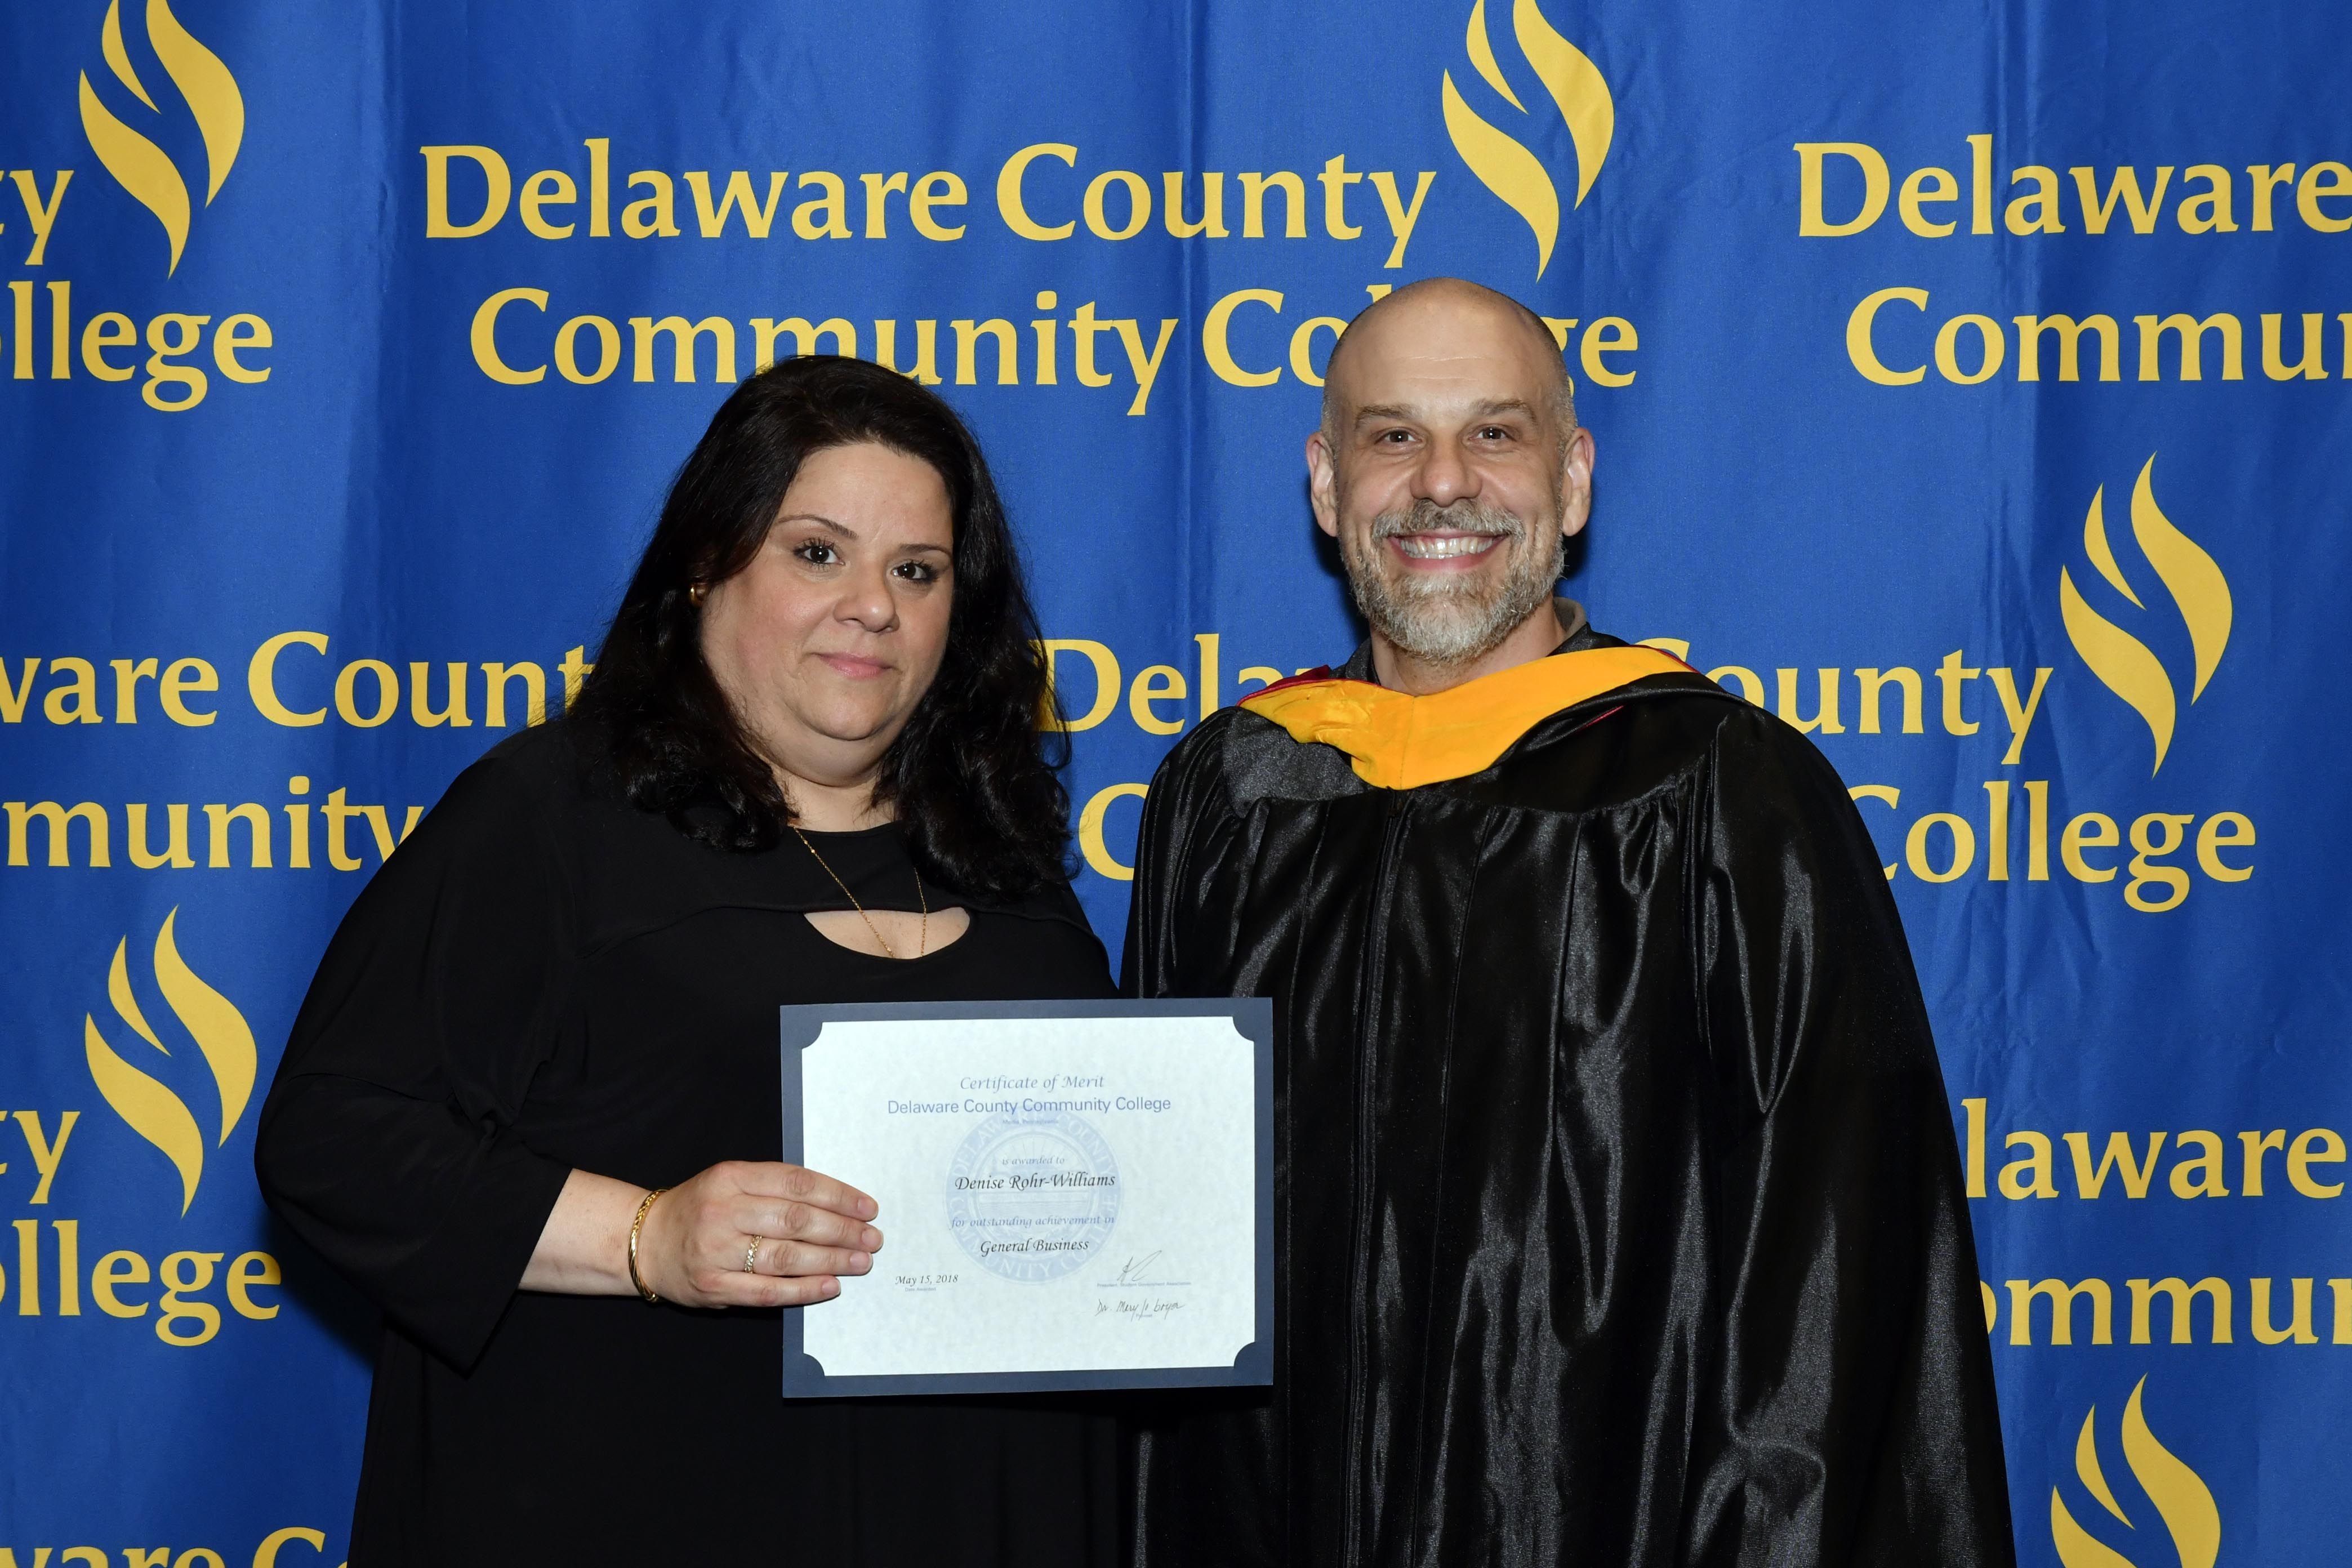 Malvern Woman, 51, Overcomes Adversity to Graduate from Delaware County Community College